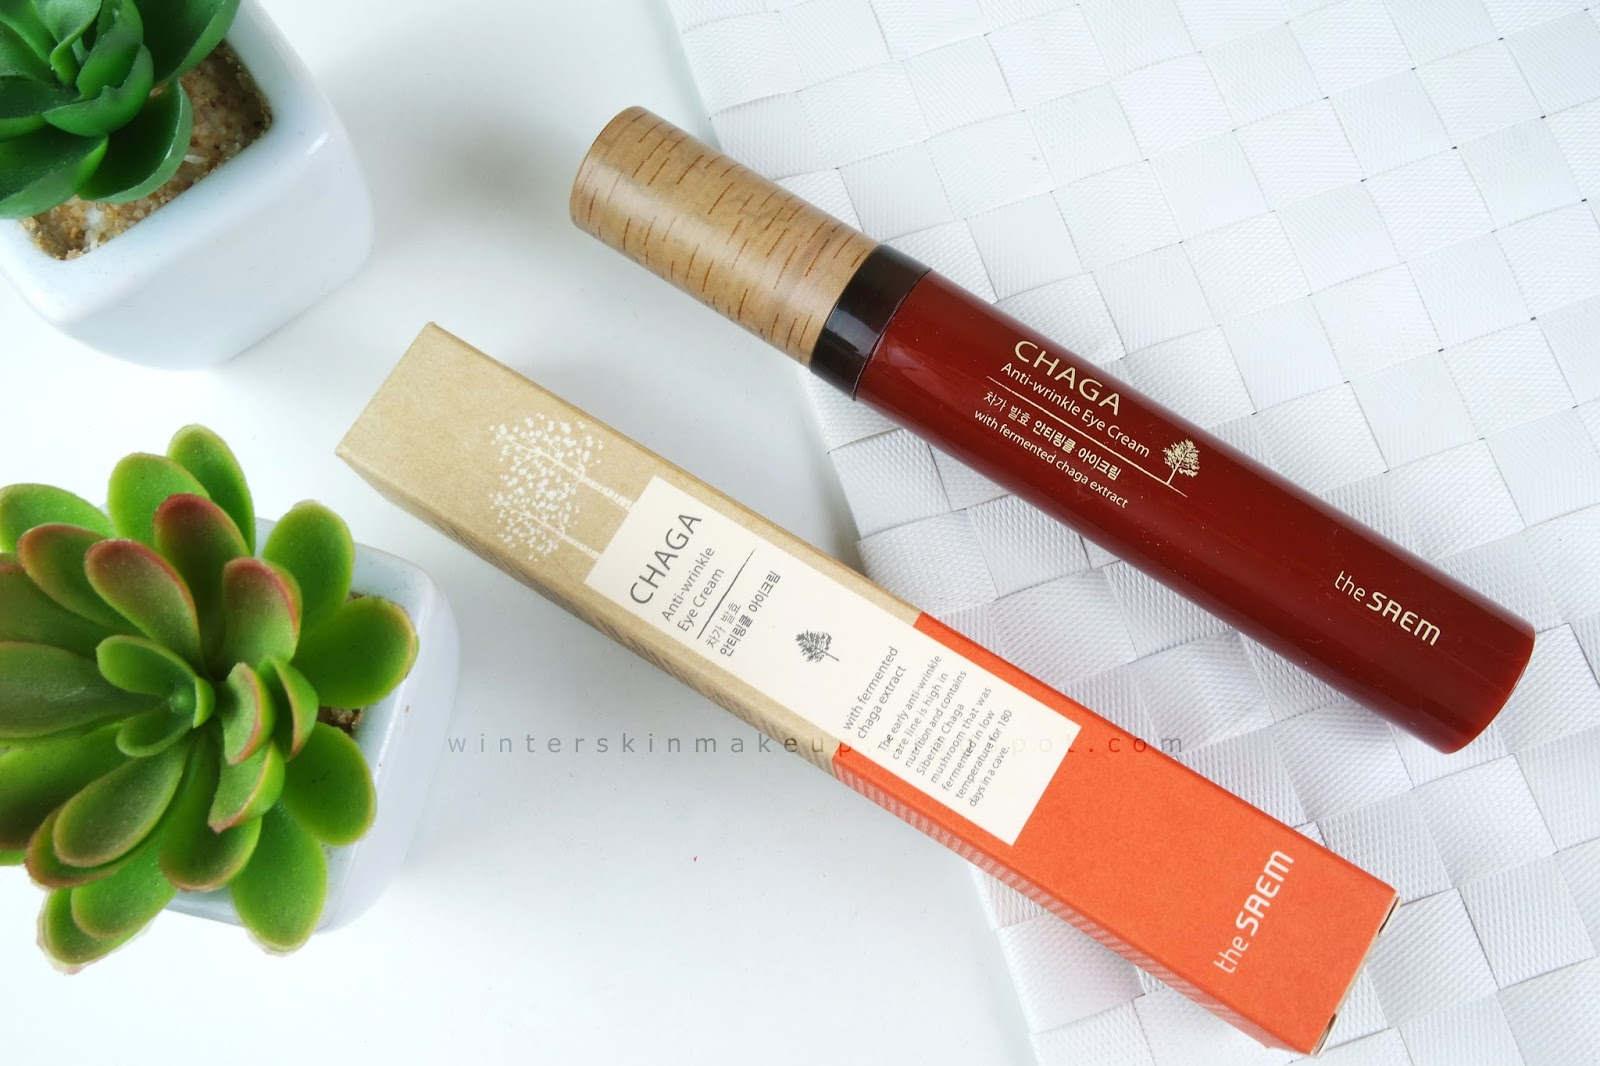 The Saem Chaga Anti-Wrinkle Eye Cream